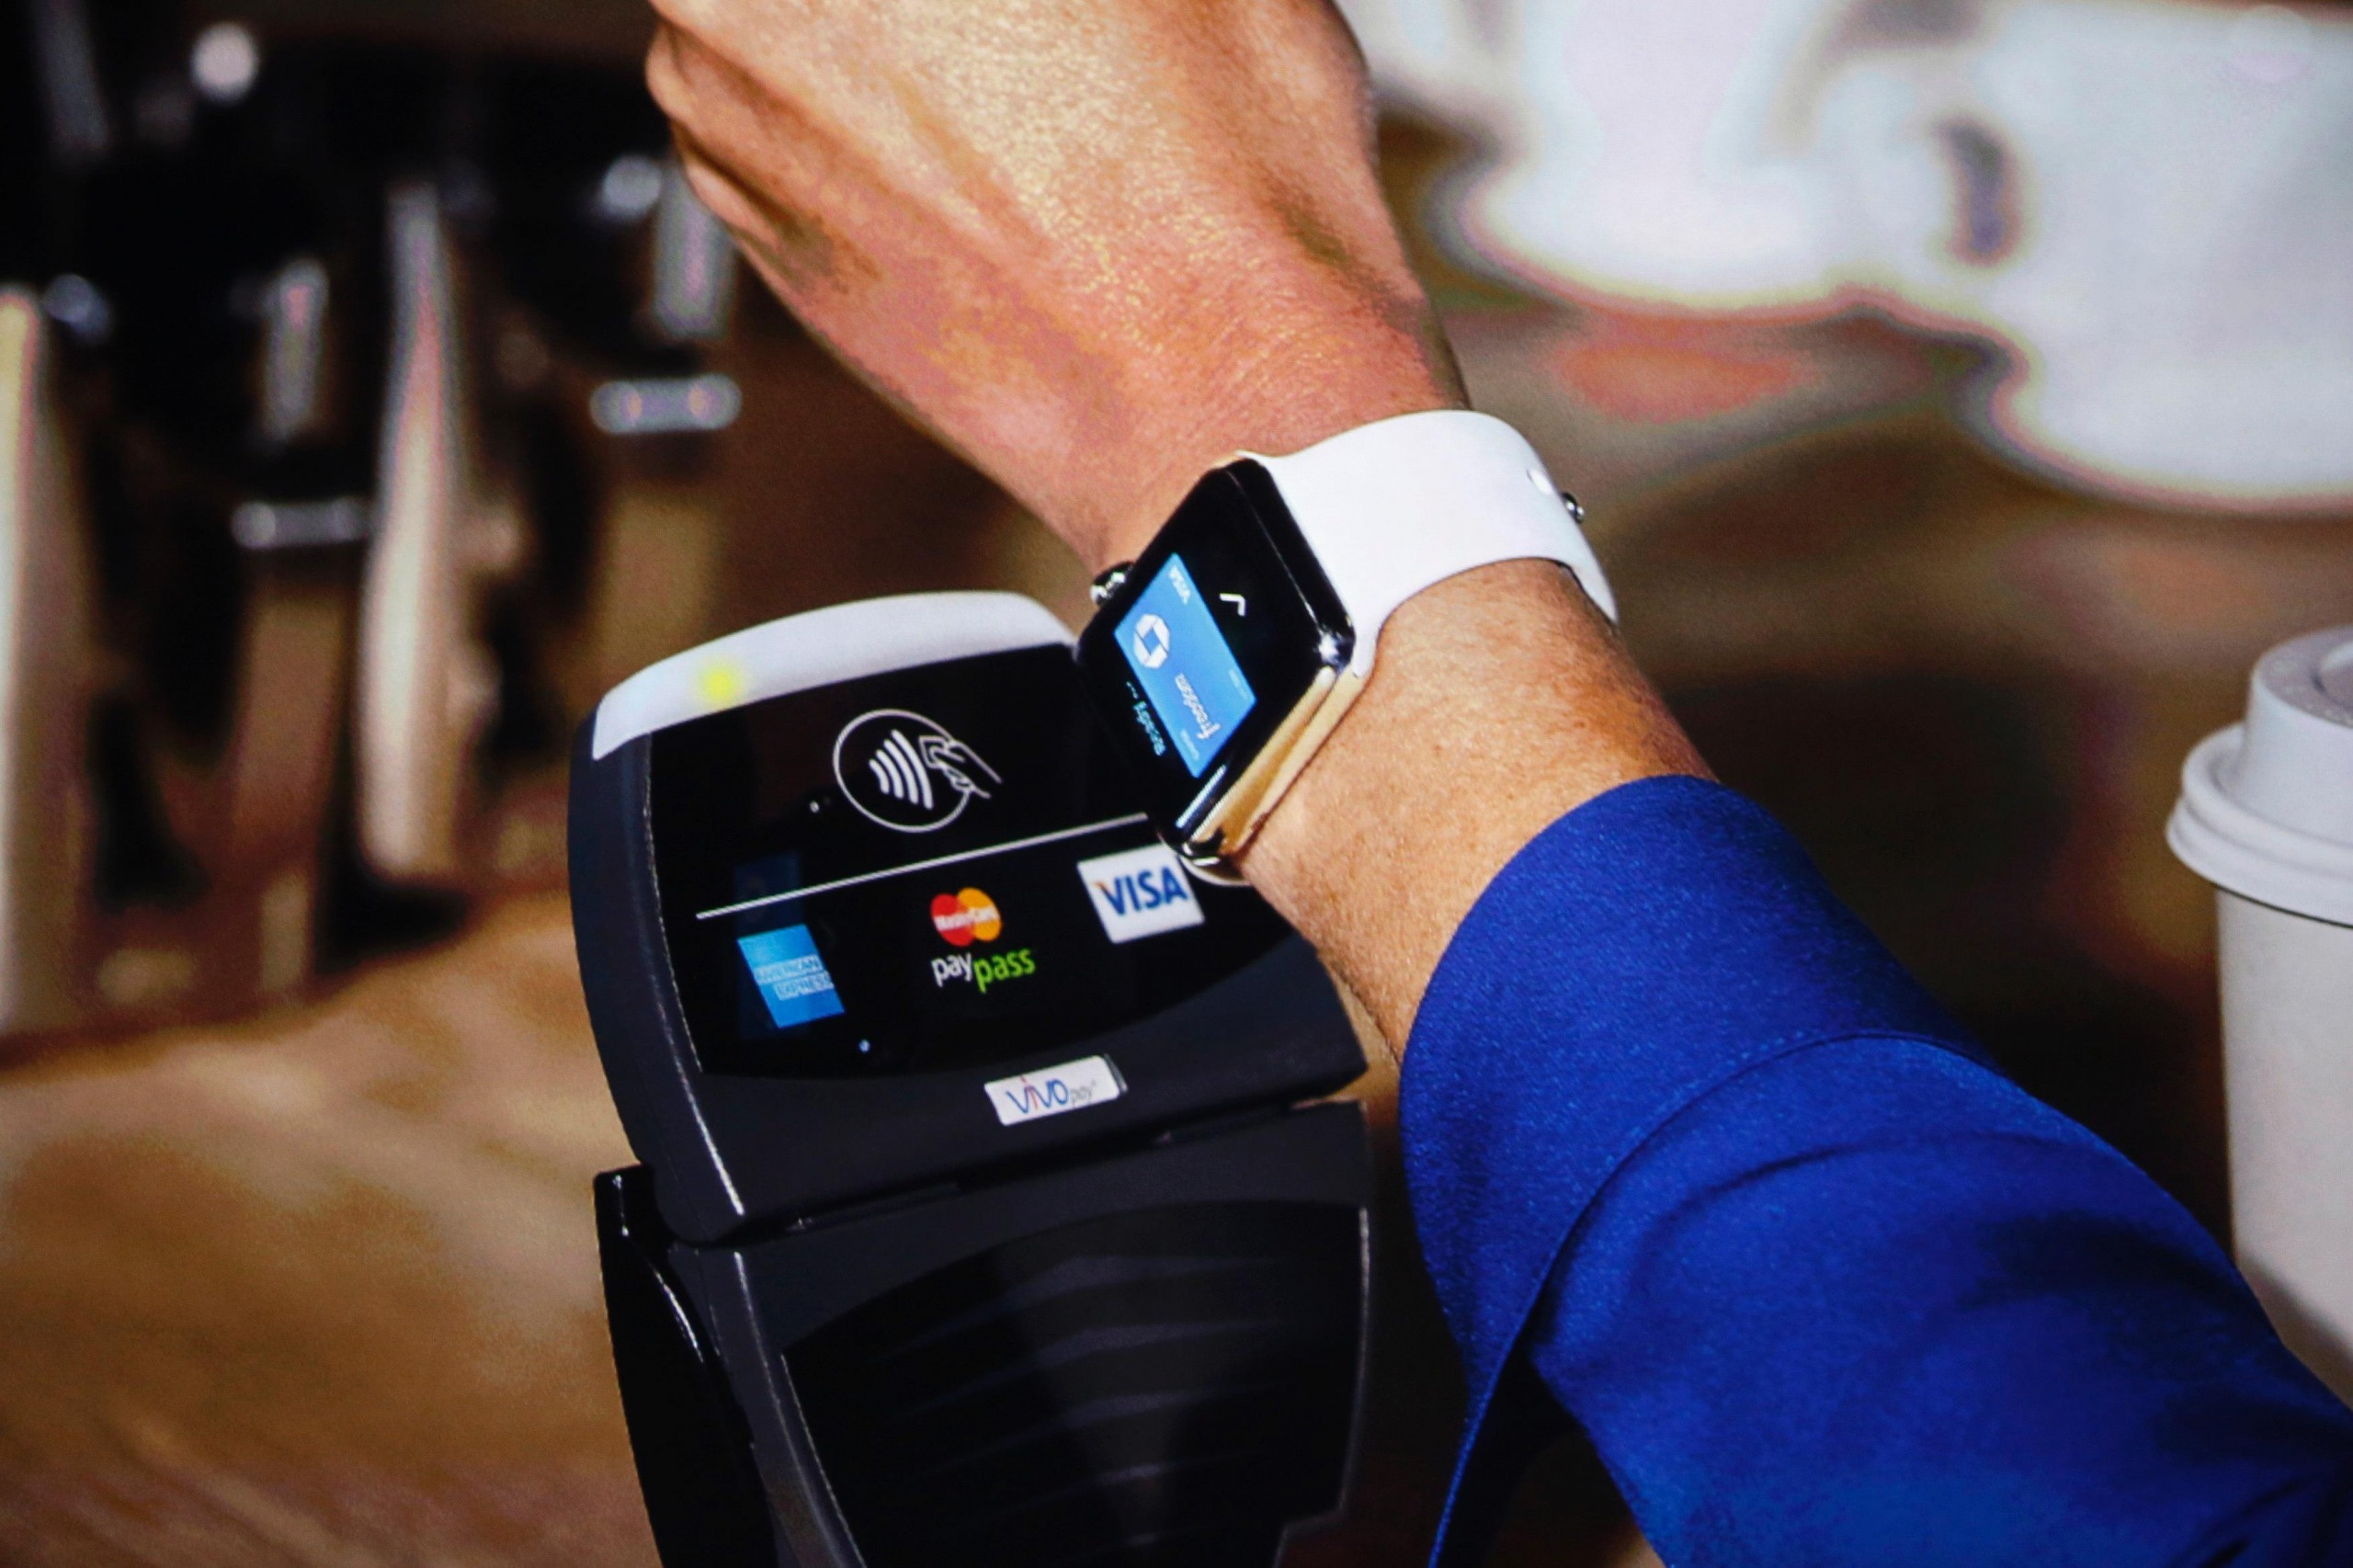 Apple Pay comes to Canada! Trump isn't well liked, and pets in planes from Fort Mac.